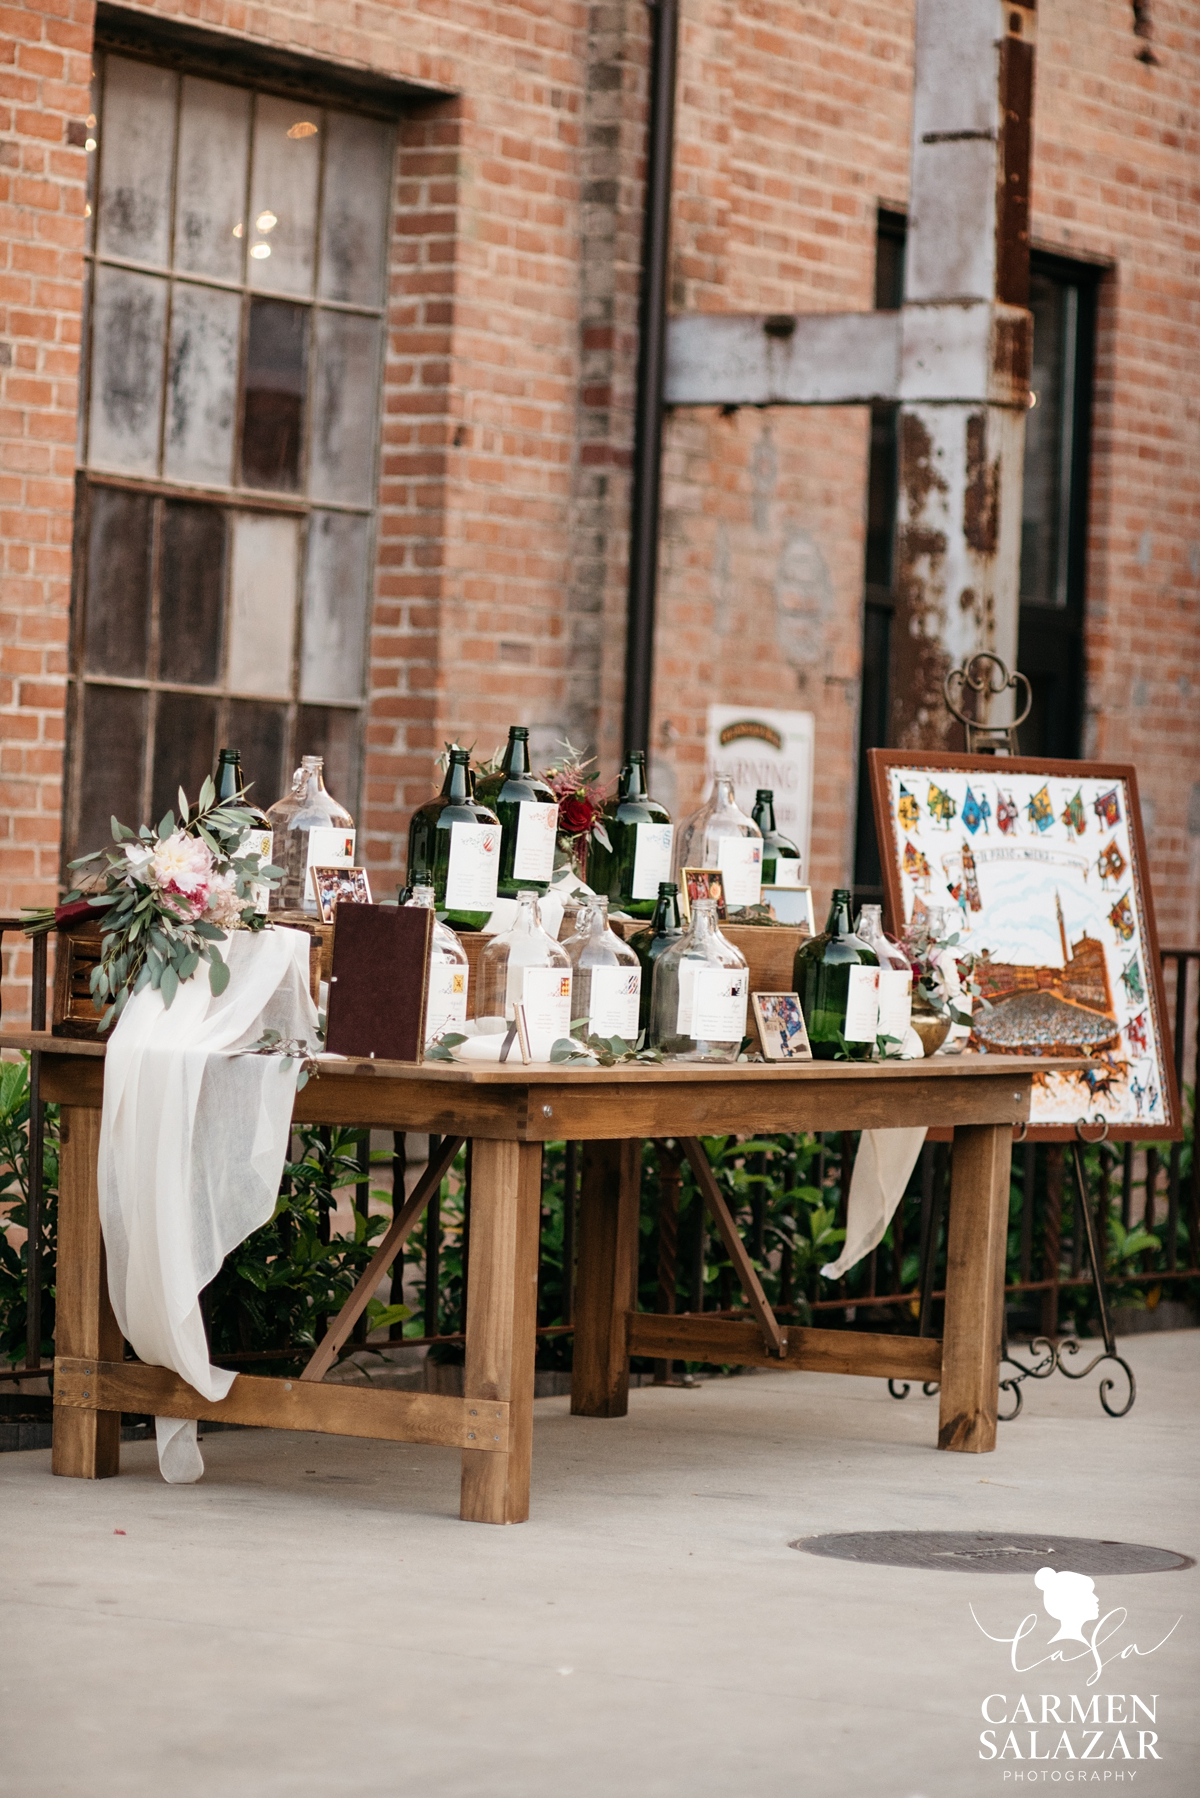 glass wine jug wedding seating chart at Old Sugar Mill by Sacramento Wedding Photographer Carmen Salazar